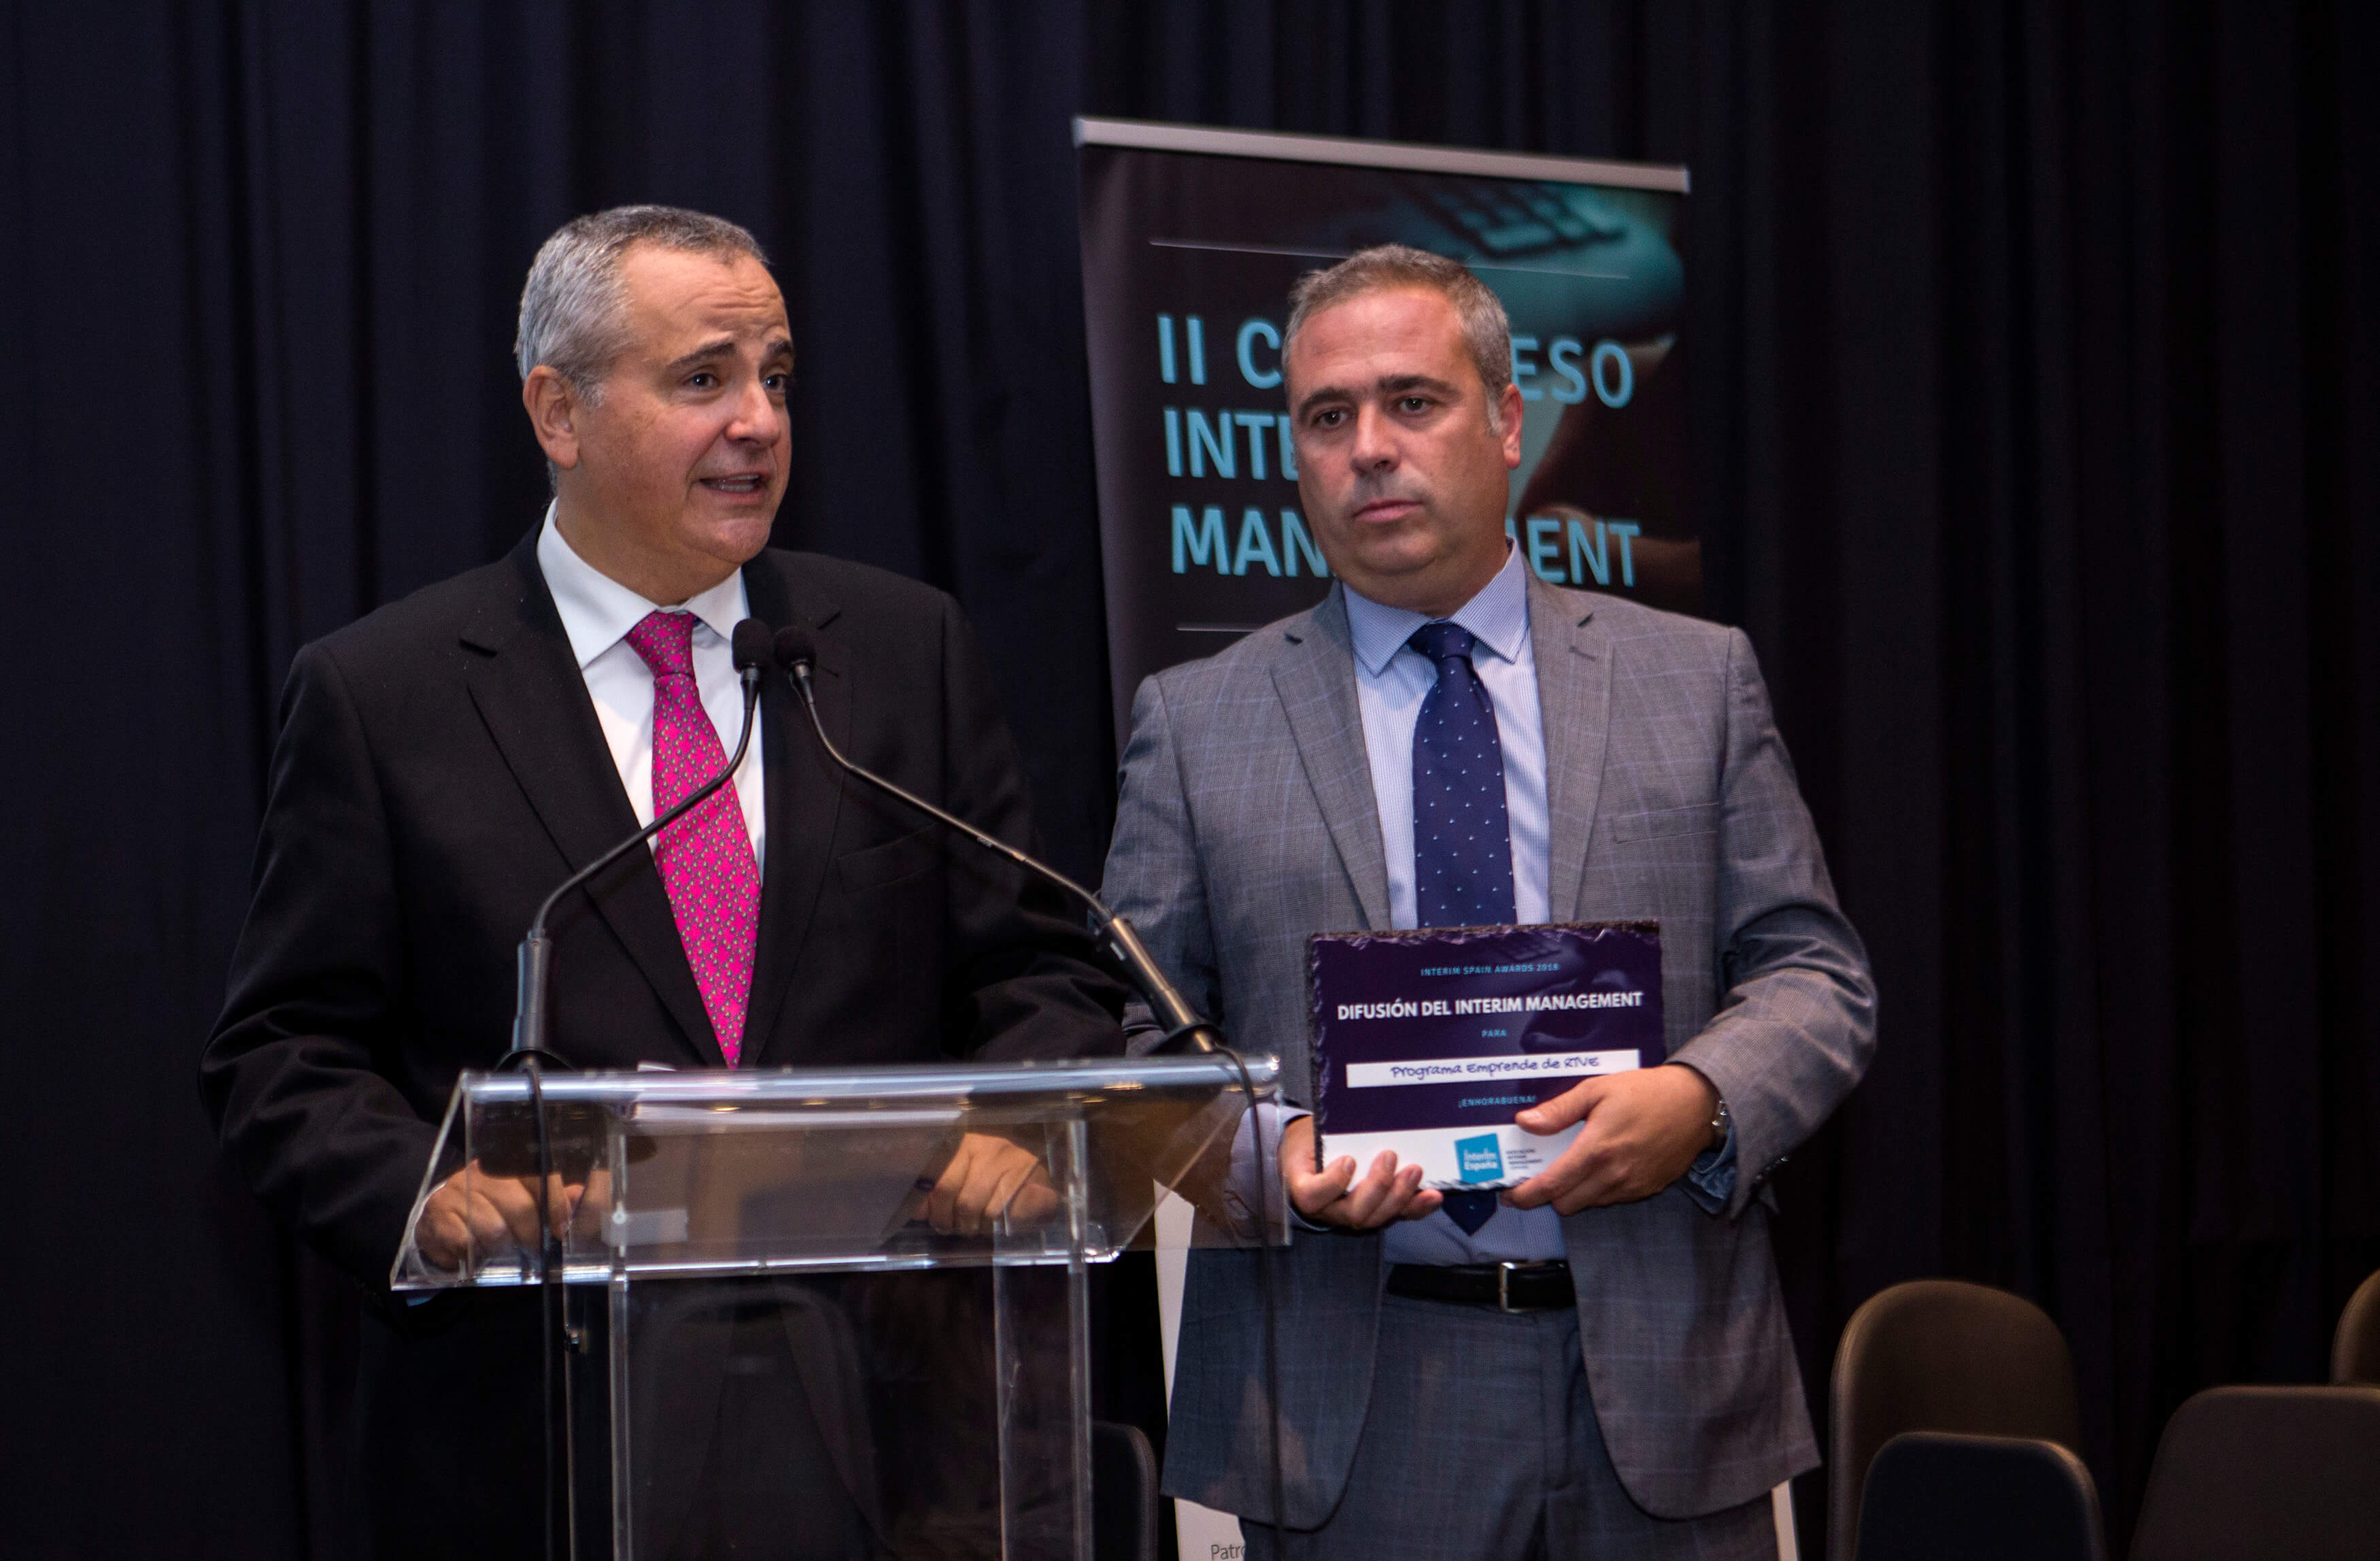 Premio al fomento del Interim Management